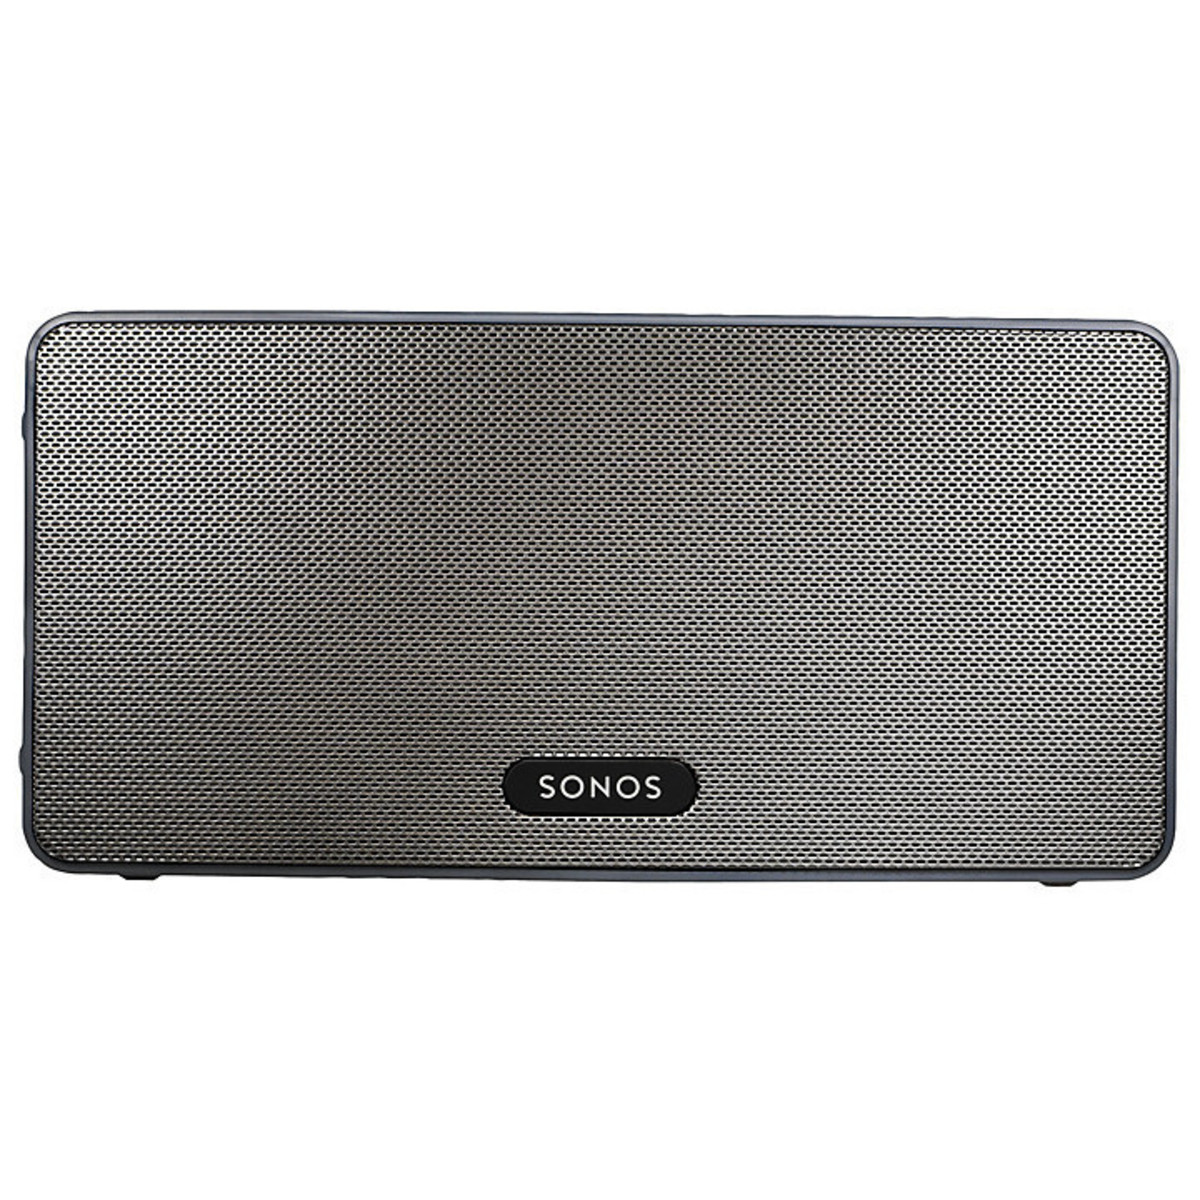 how to add rooms on sonos